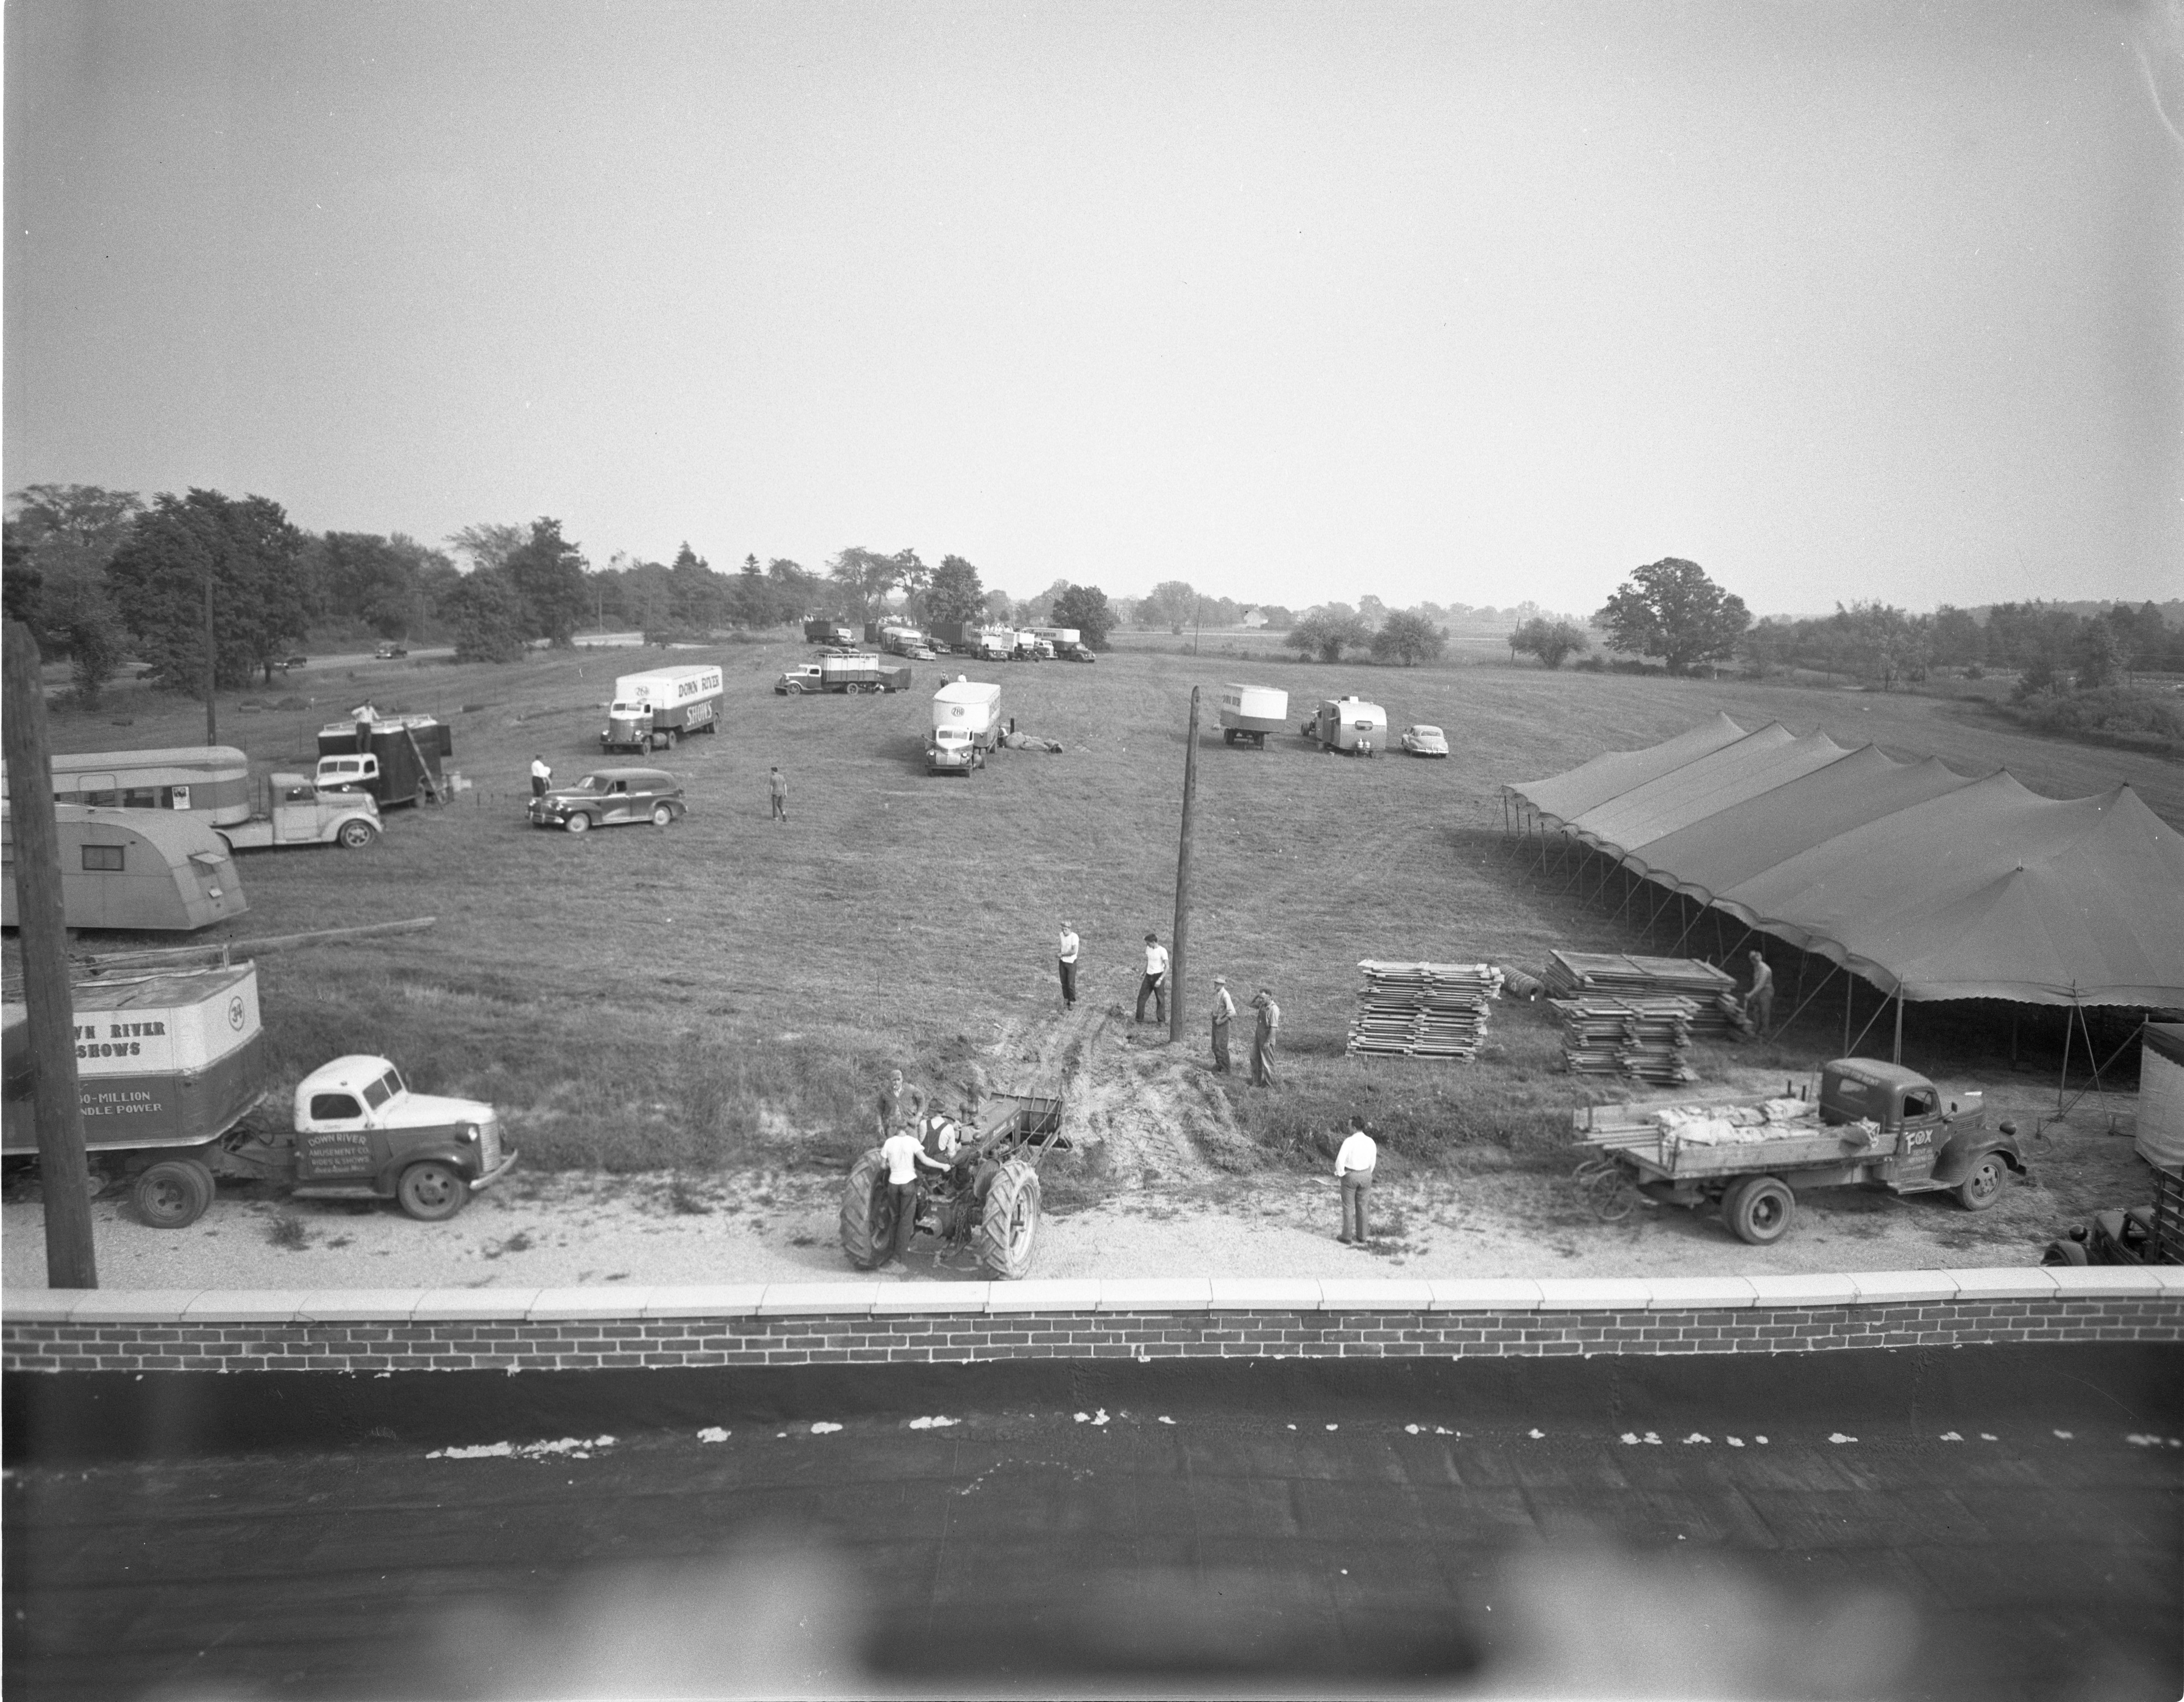 Workmen Prepare Site Of Annual Chelsea Community Fair, October 1950 image